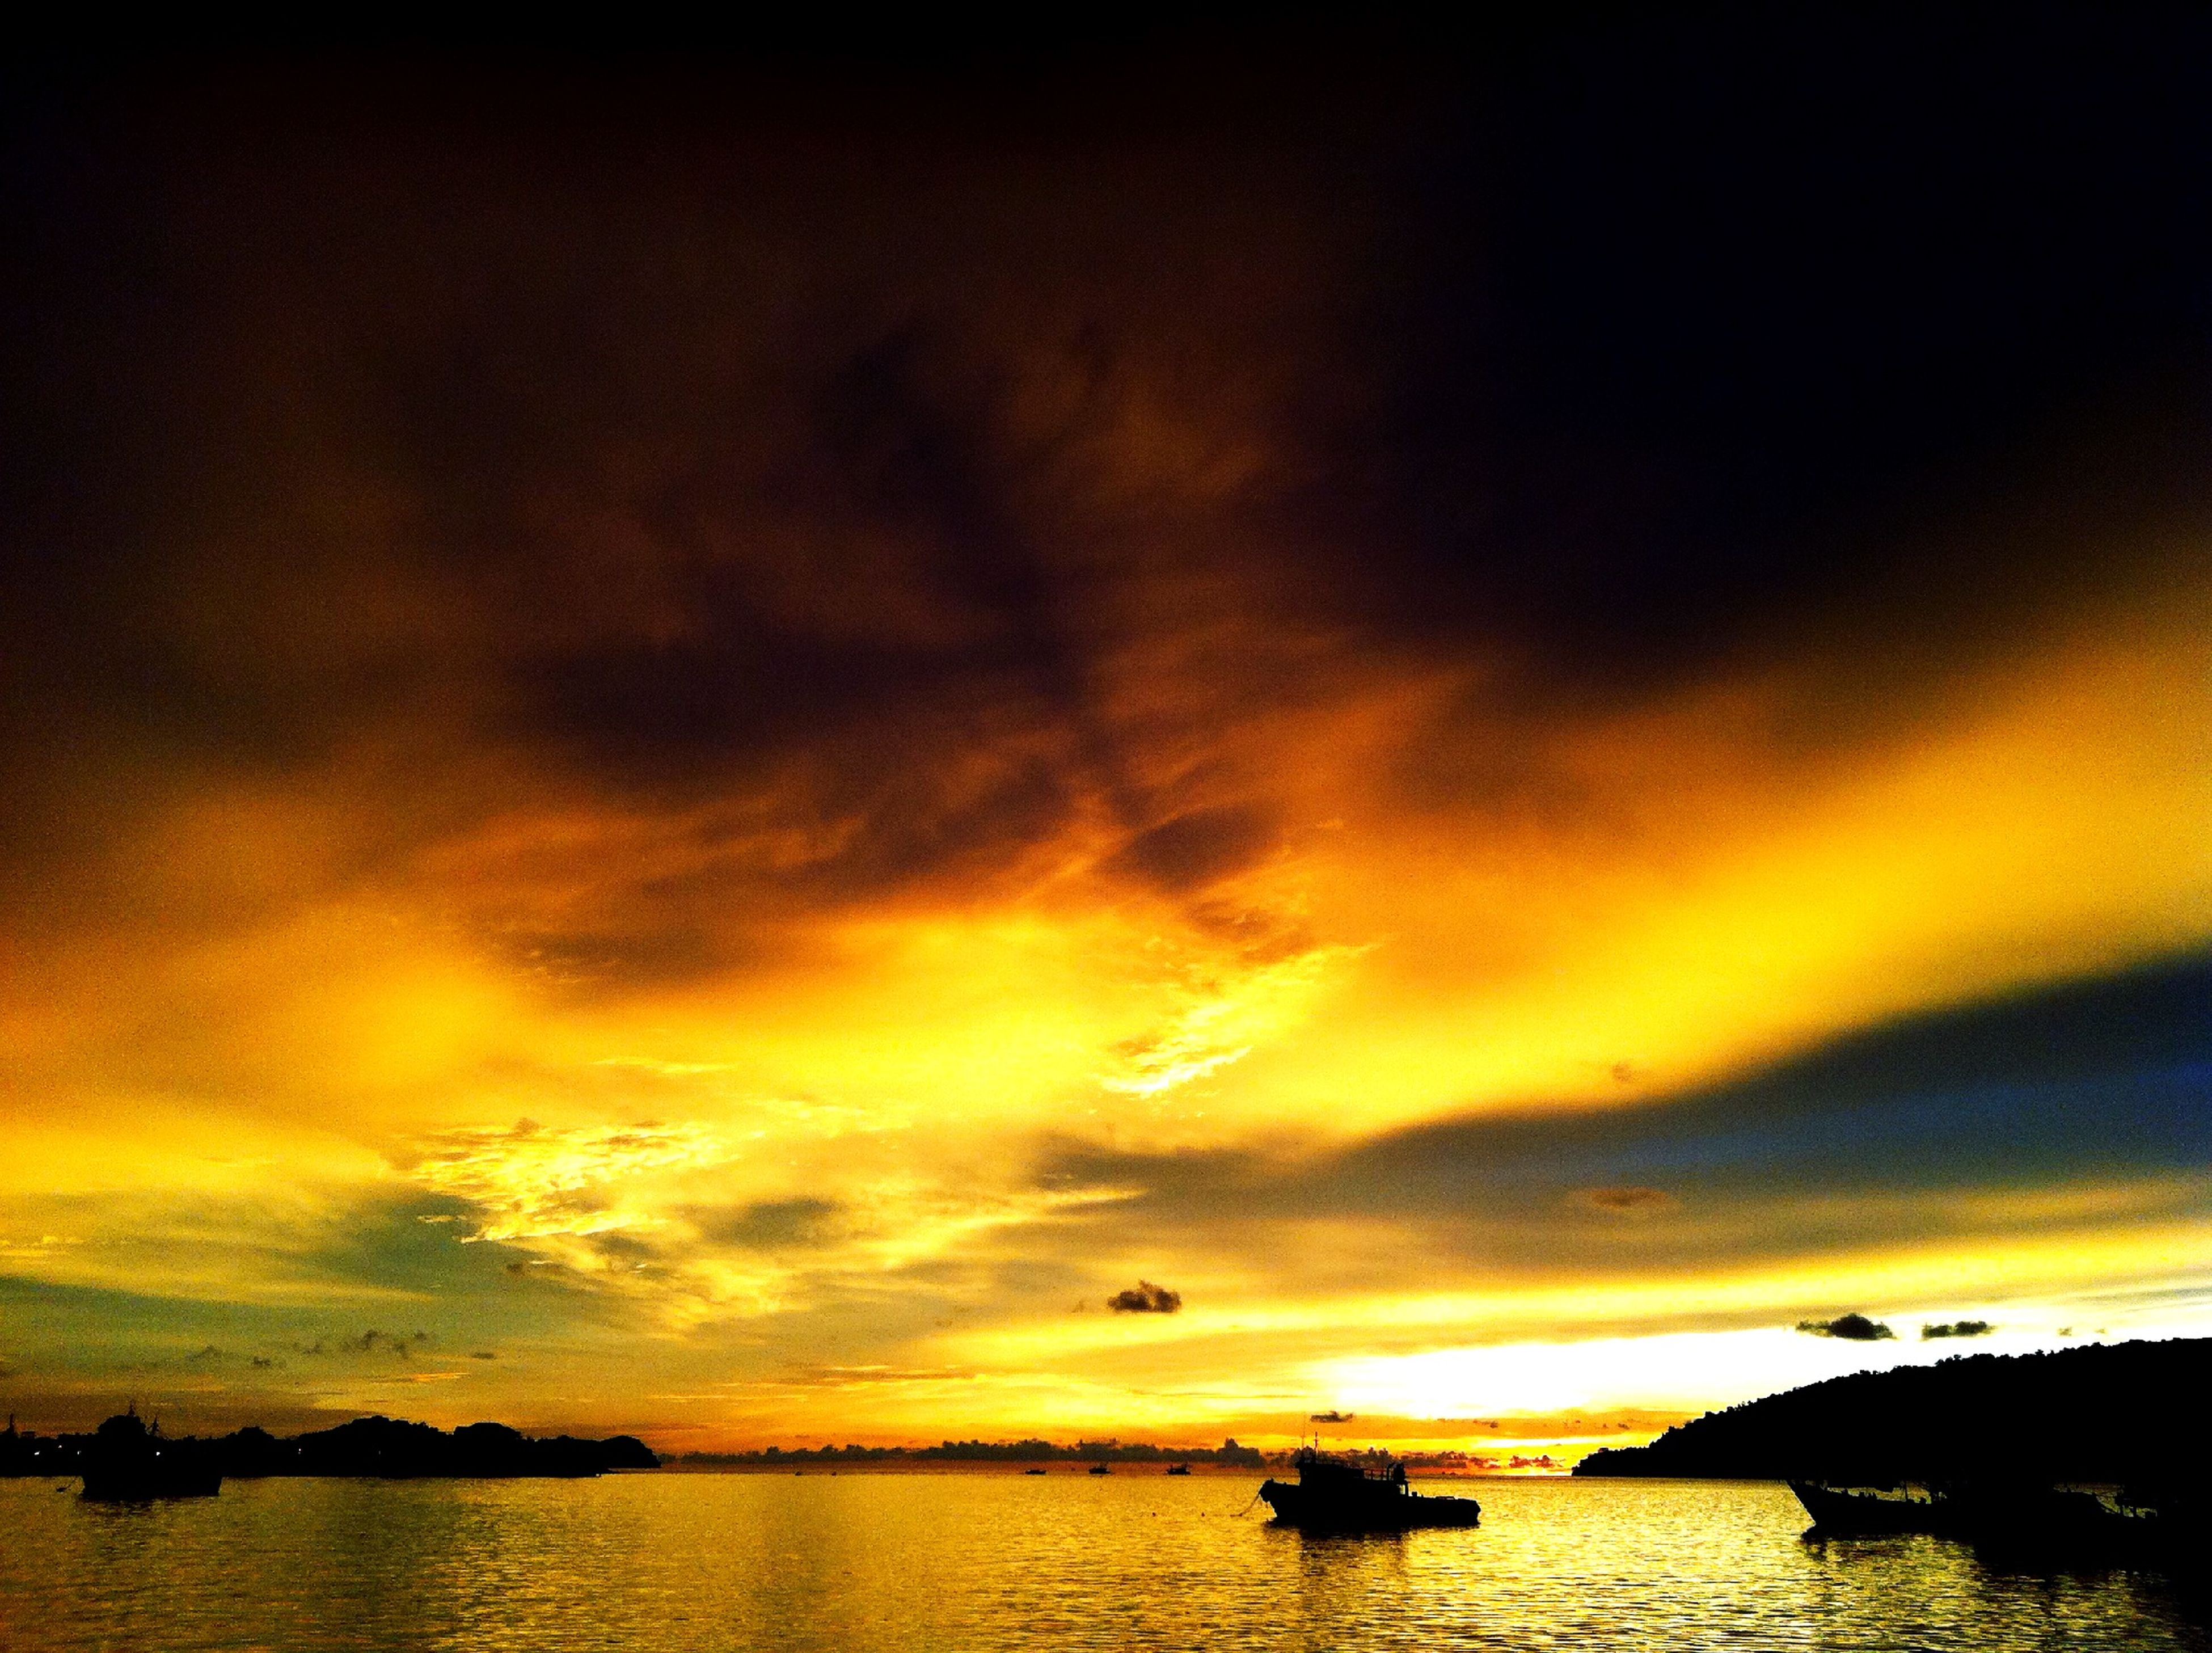 sunset, water, sky, scenics, beauty in nature, tranquil scene, sea, tranquility, cloud - sky, orange color, silhouette, idyllic, waterfront, dramatic sky, cloud, cloudy, nature, horizon over water, reflection, sun